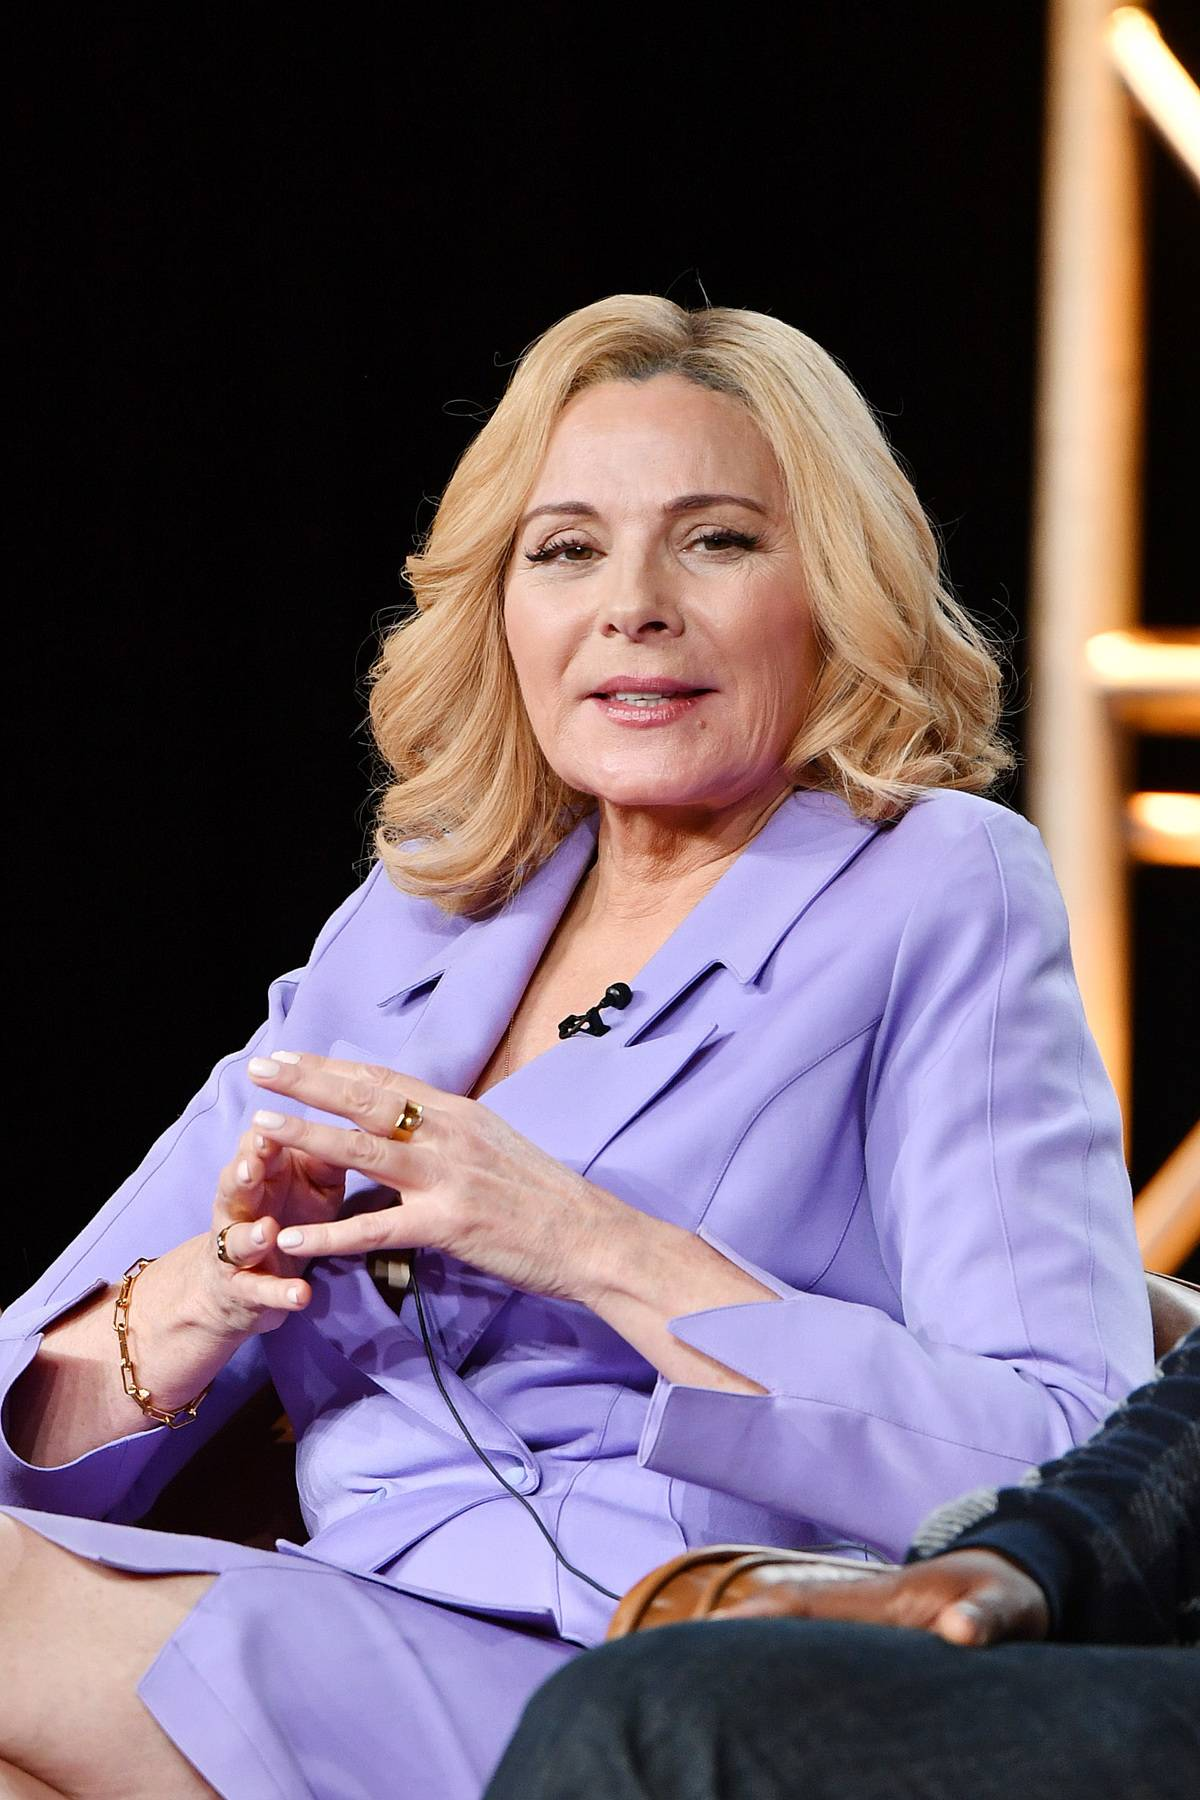 PASADENA, CALIFORNIA - JANUARY 07: Kim Cattrall of 'Filthy Rich' speaks during the Fox segment of the 2020 Winter TCA Press Tour at The Langham Huntington, Pasadena on January 07, 2020 in Pasadena, California.